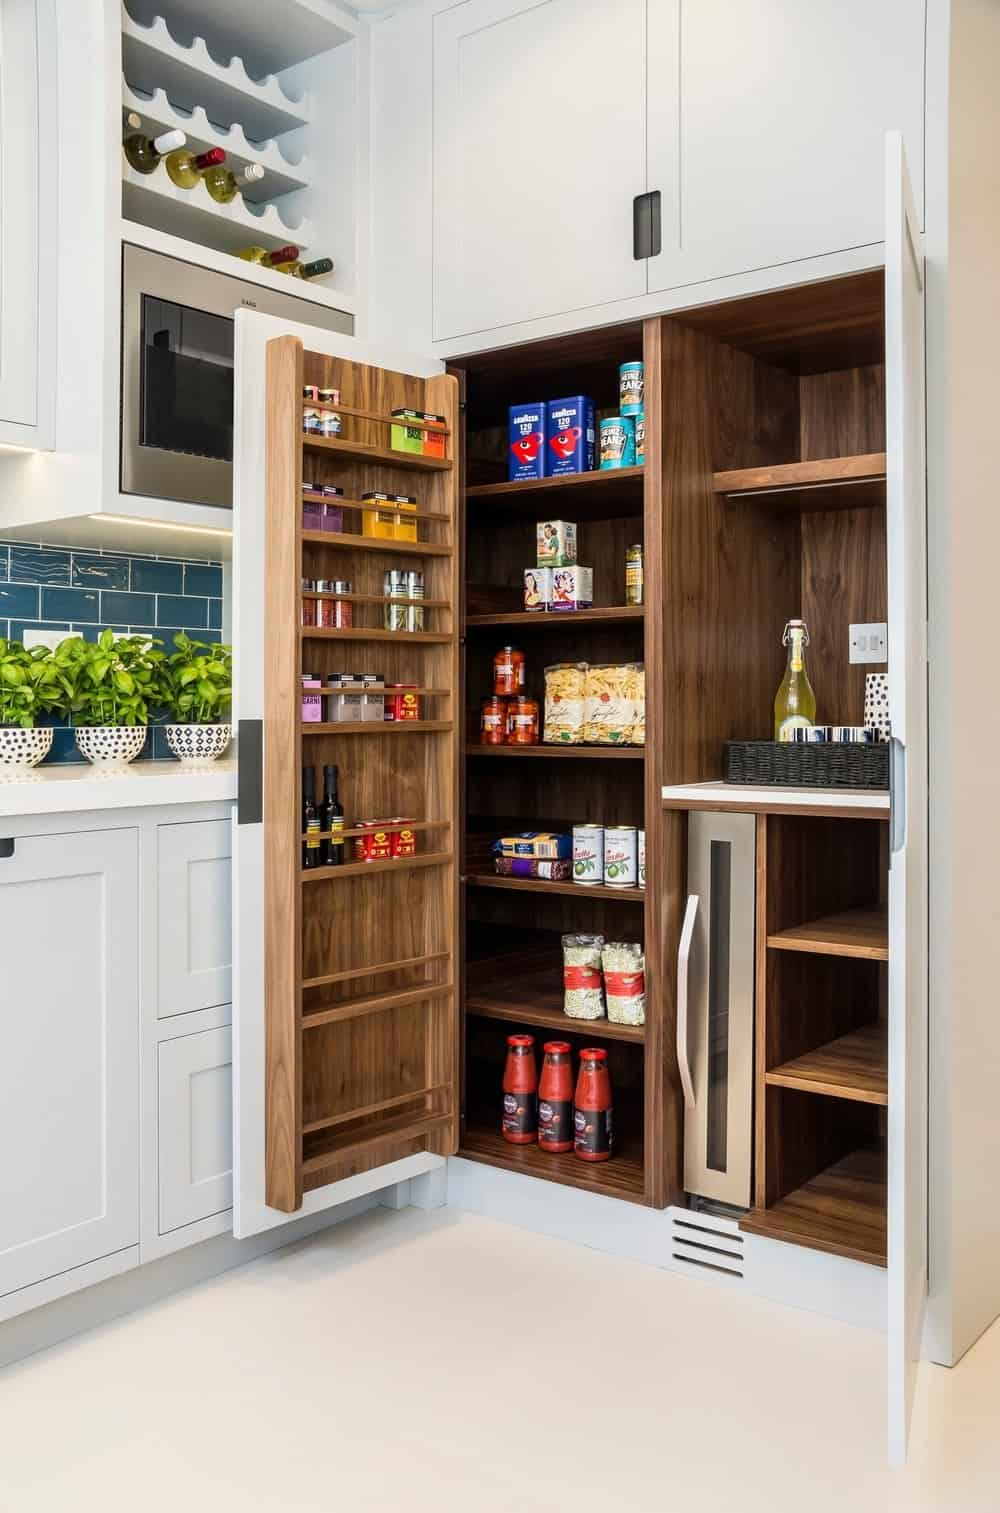 Sleek kitchen featuring a swing out pantry with natural wood internal and white cabinetry along with a built-in wine rack mounted above an oven shelf.